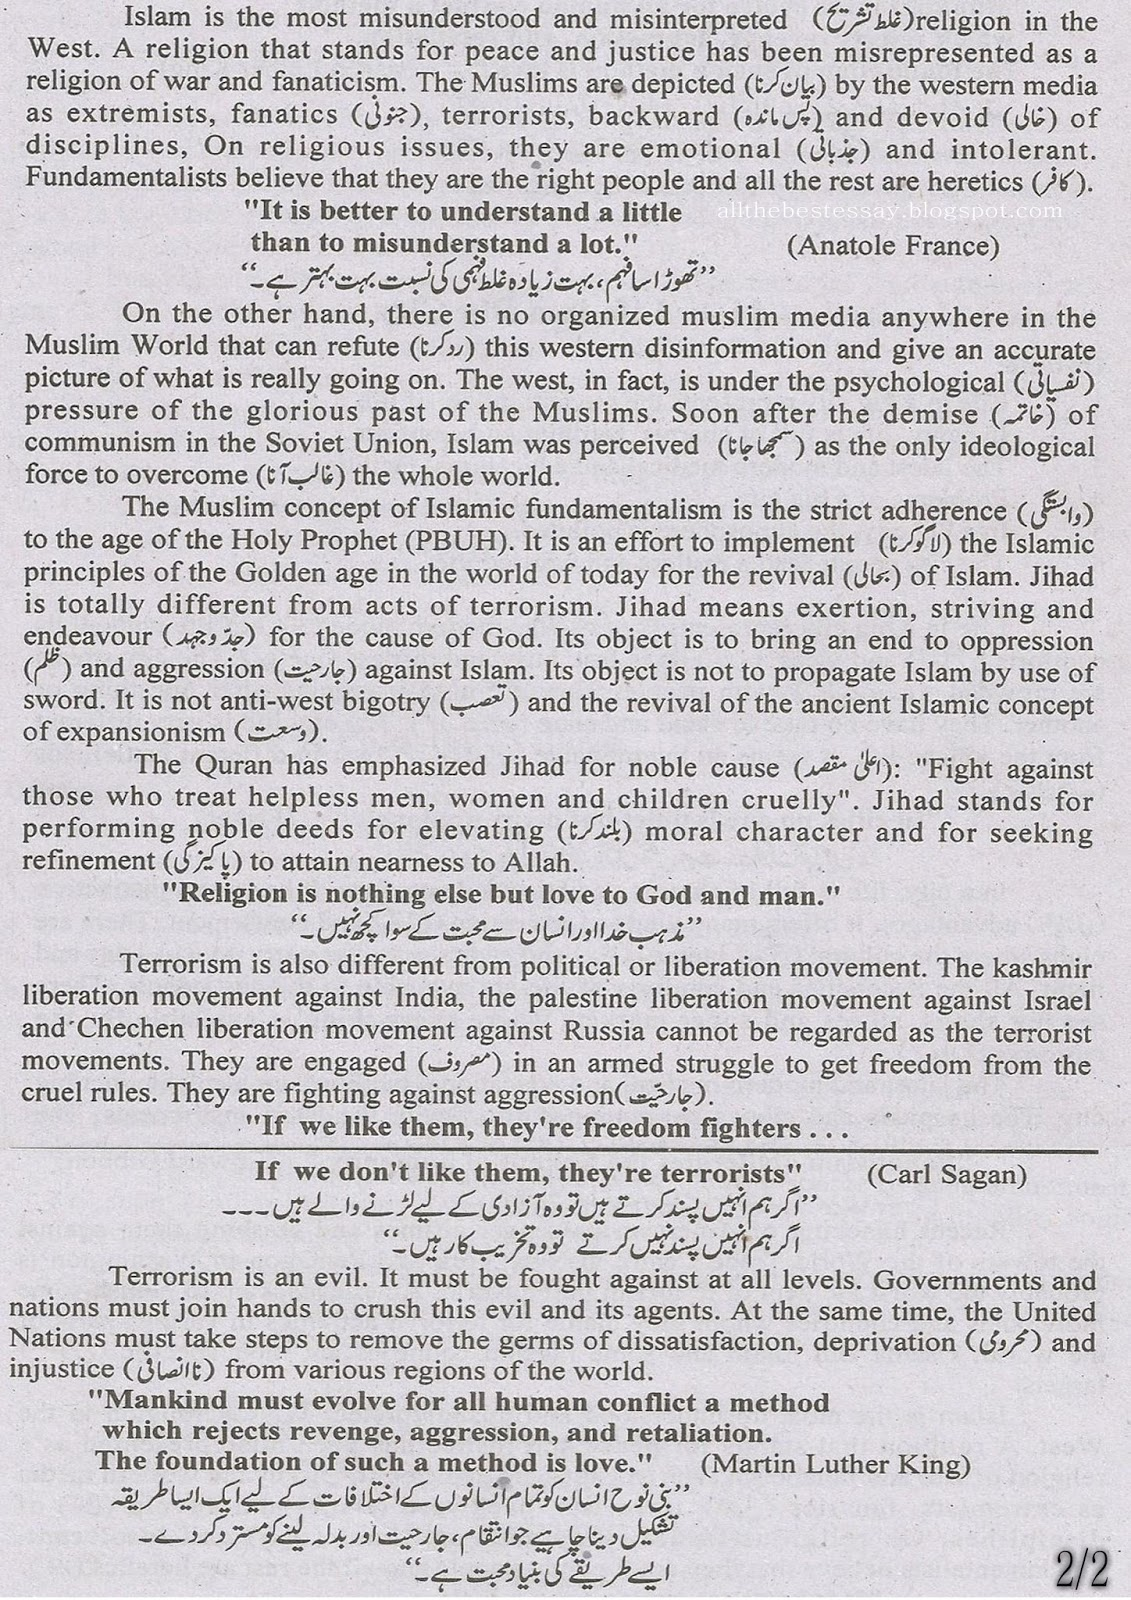 Urdu Essay On Allama Iqbal Written By Saeed Siddiqui  Essay On  Urdu Essay On Allama Iqbal Written By Saeed Siddiqui Advanced English Essays also University English Essay  Thesis Statement Argumentative Essay